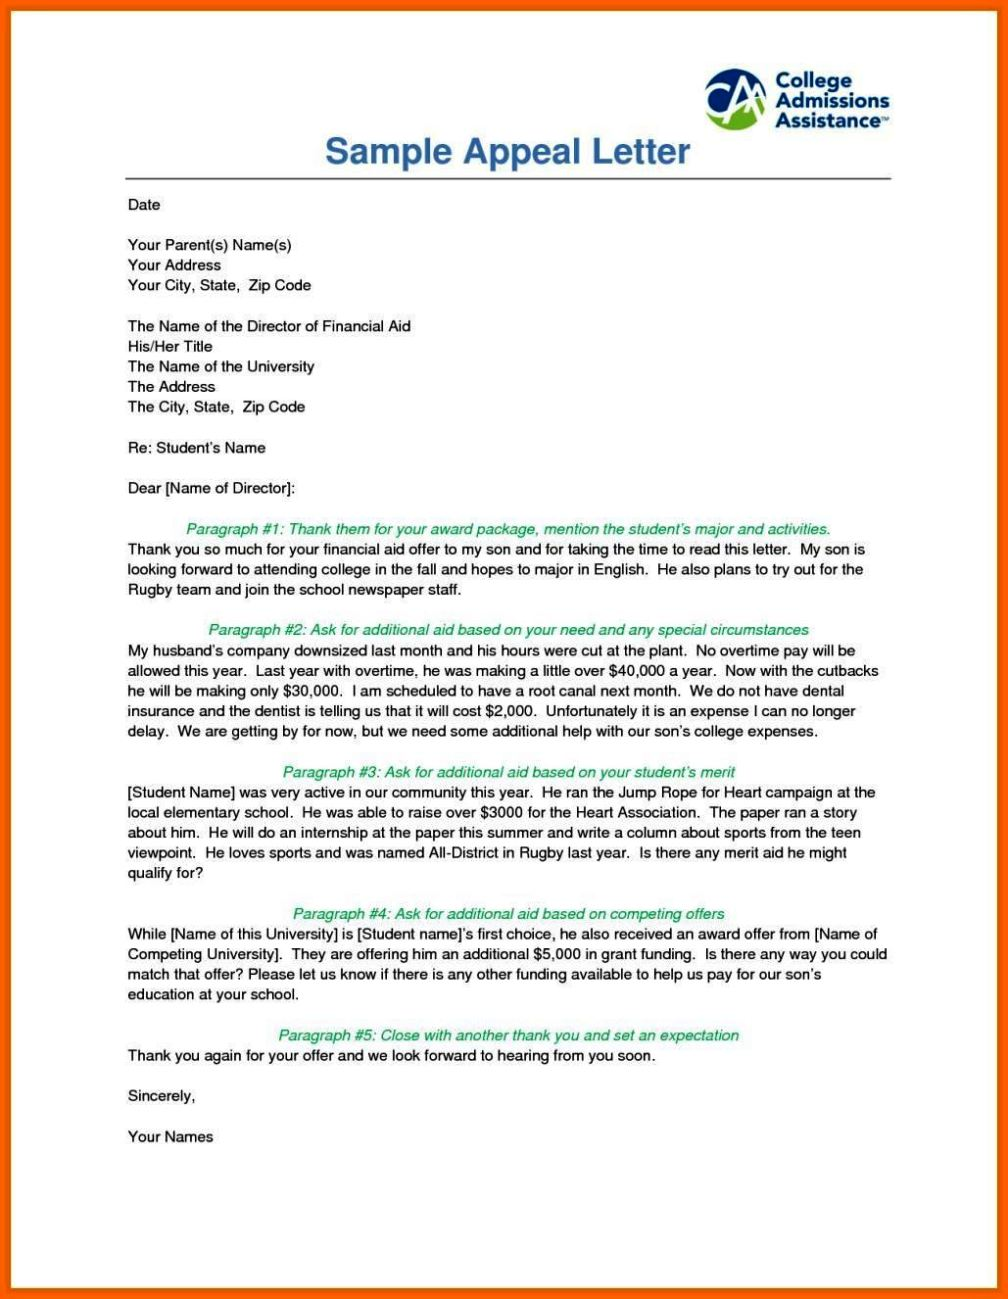 Sample appeal letter for financial aid reinstatement sample appeal letter for financial aid reinstatement thecheapjerseys Choice Image